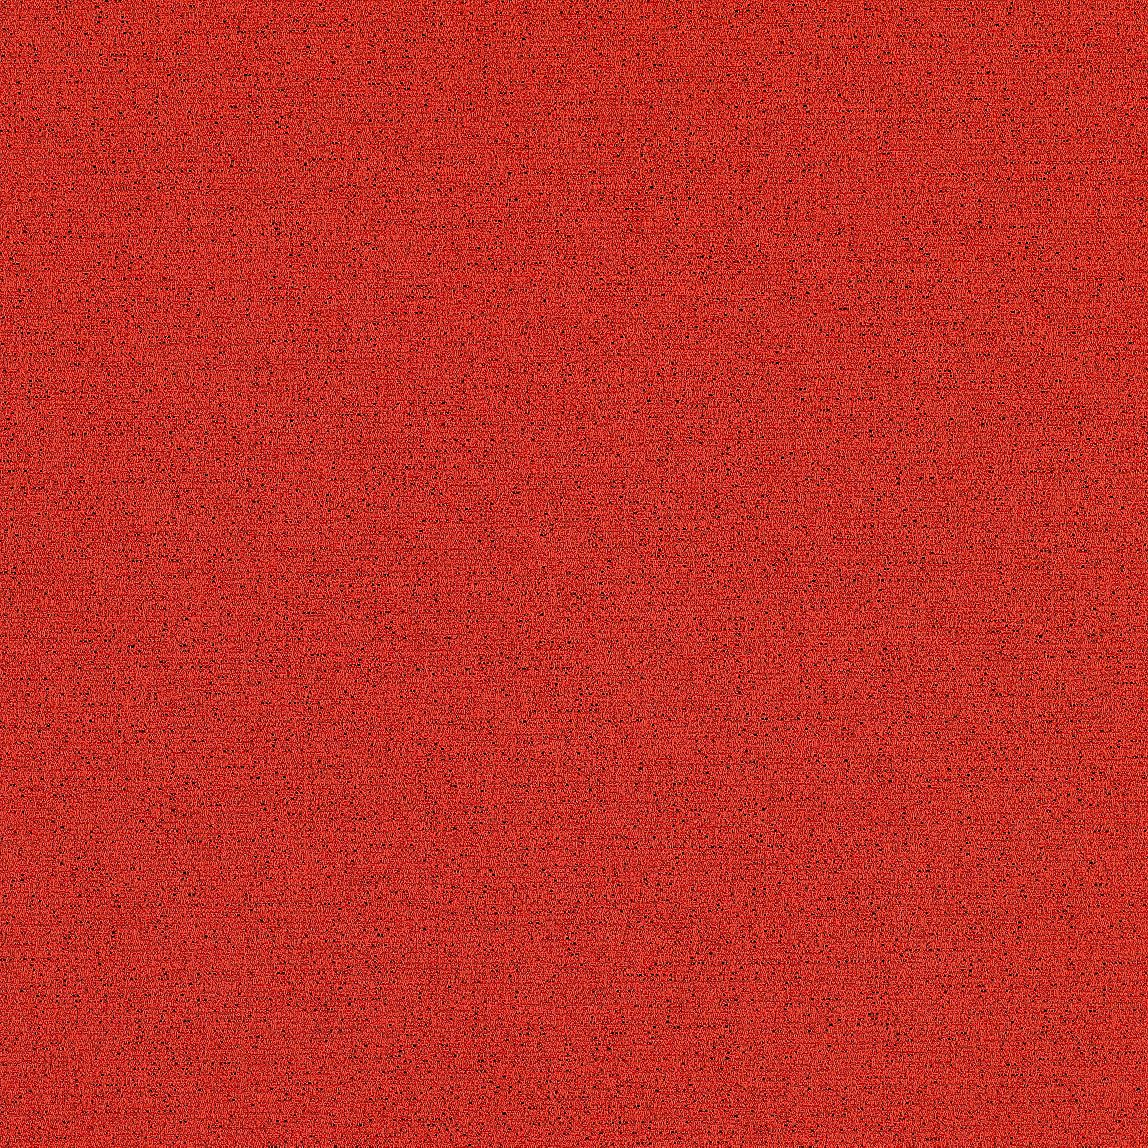 Blip RED HOT Swatch